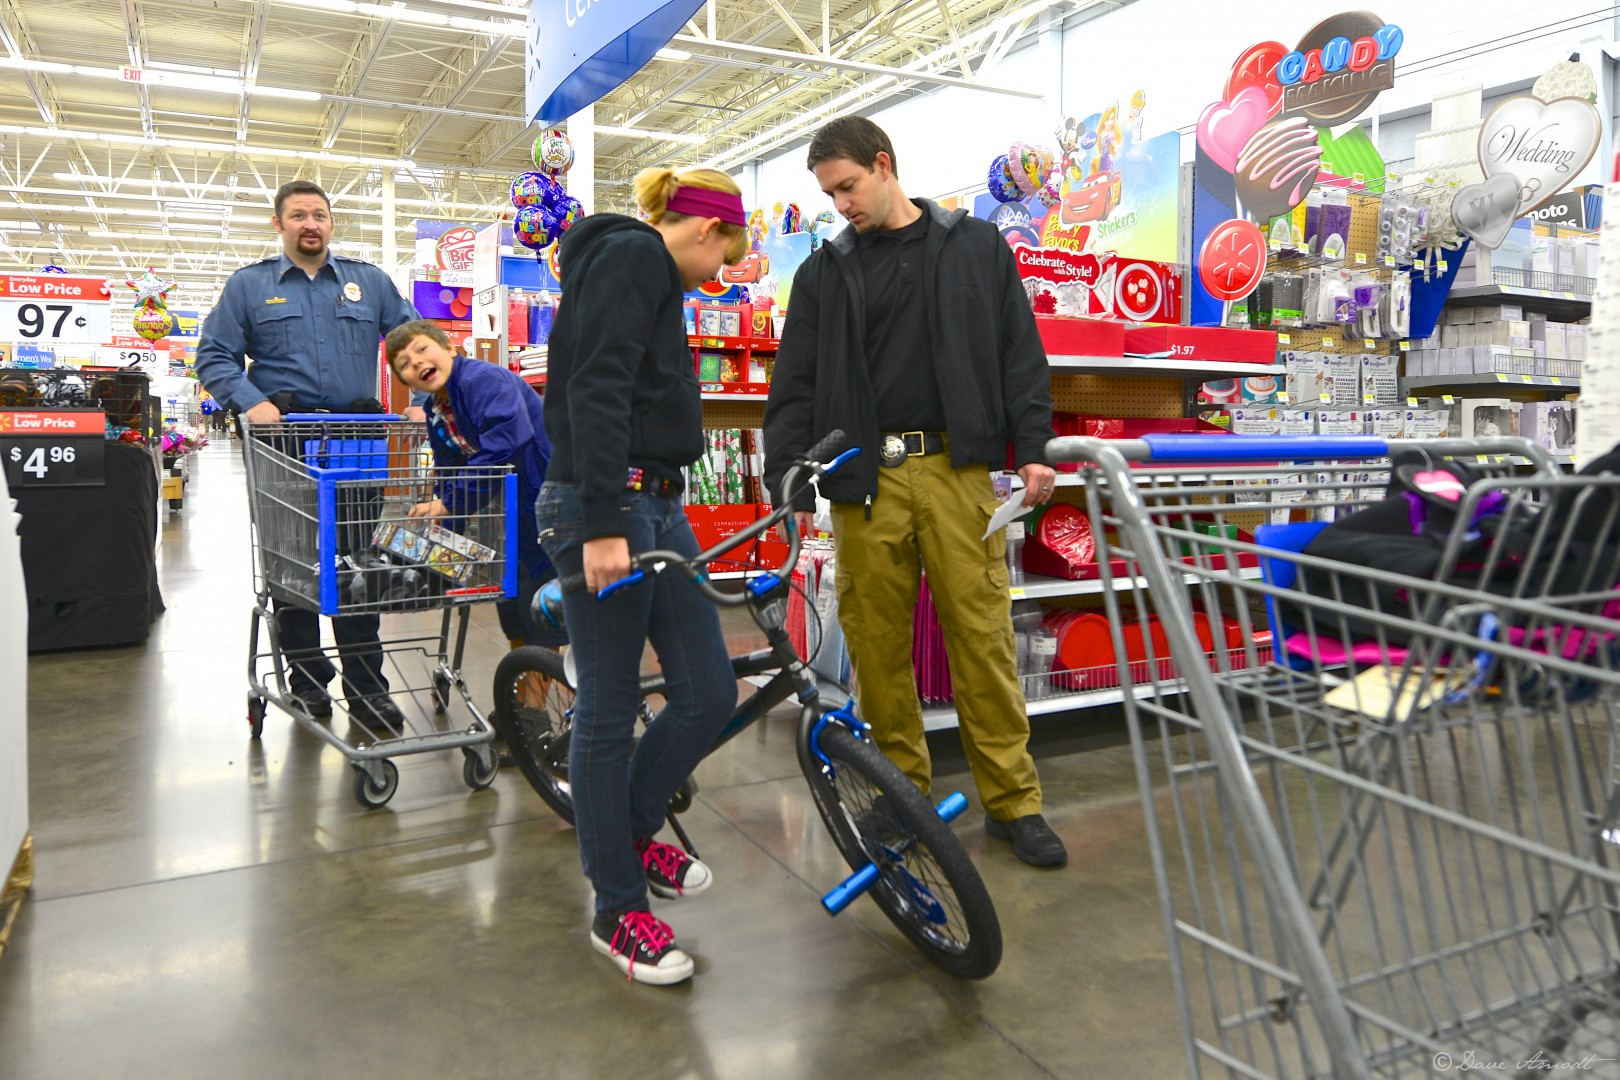 Adult Parole and Probation officer Daniel Cox helps Charlee Morrow with a new bike purchase.